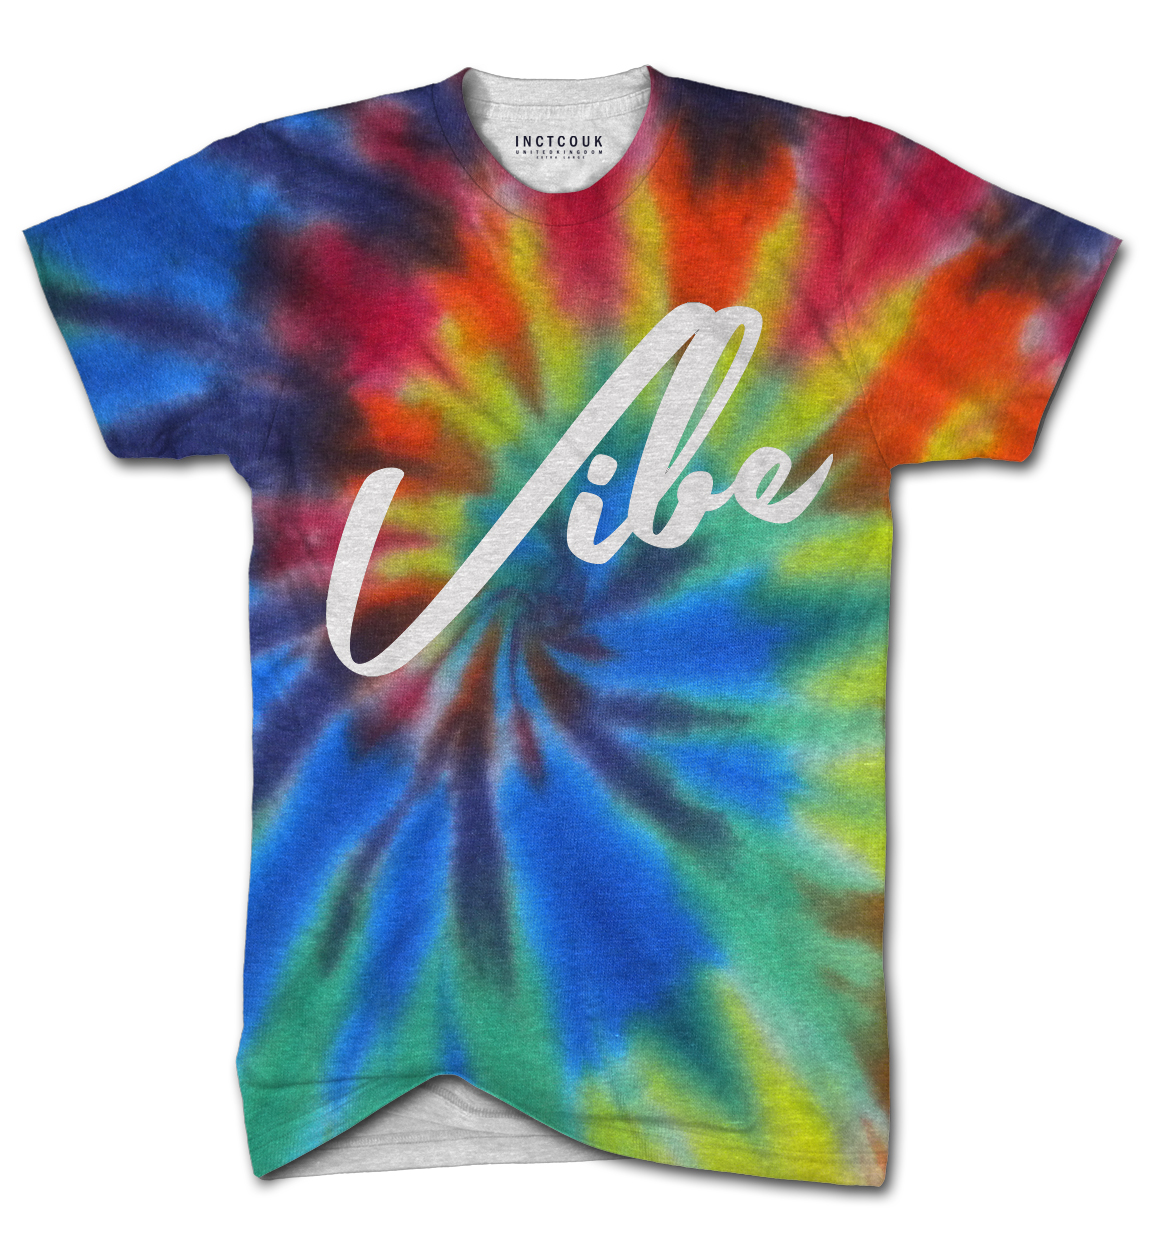 Vibe tie dye all over print t shirt for Tie dye printed shirts